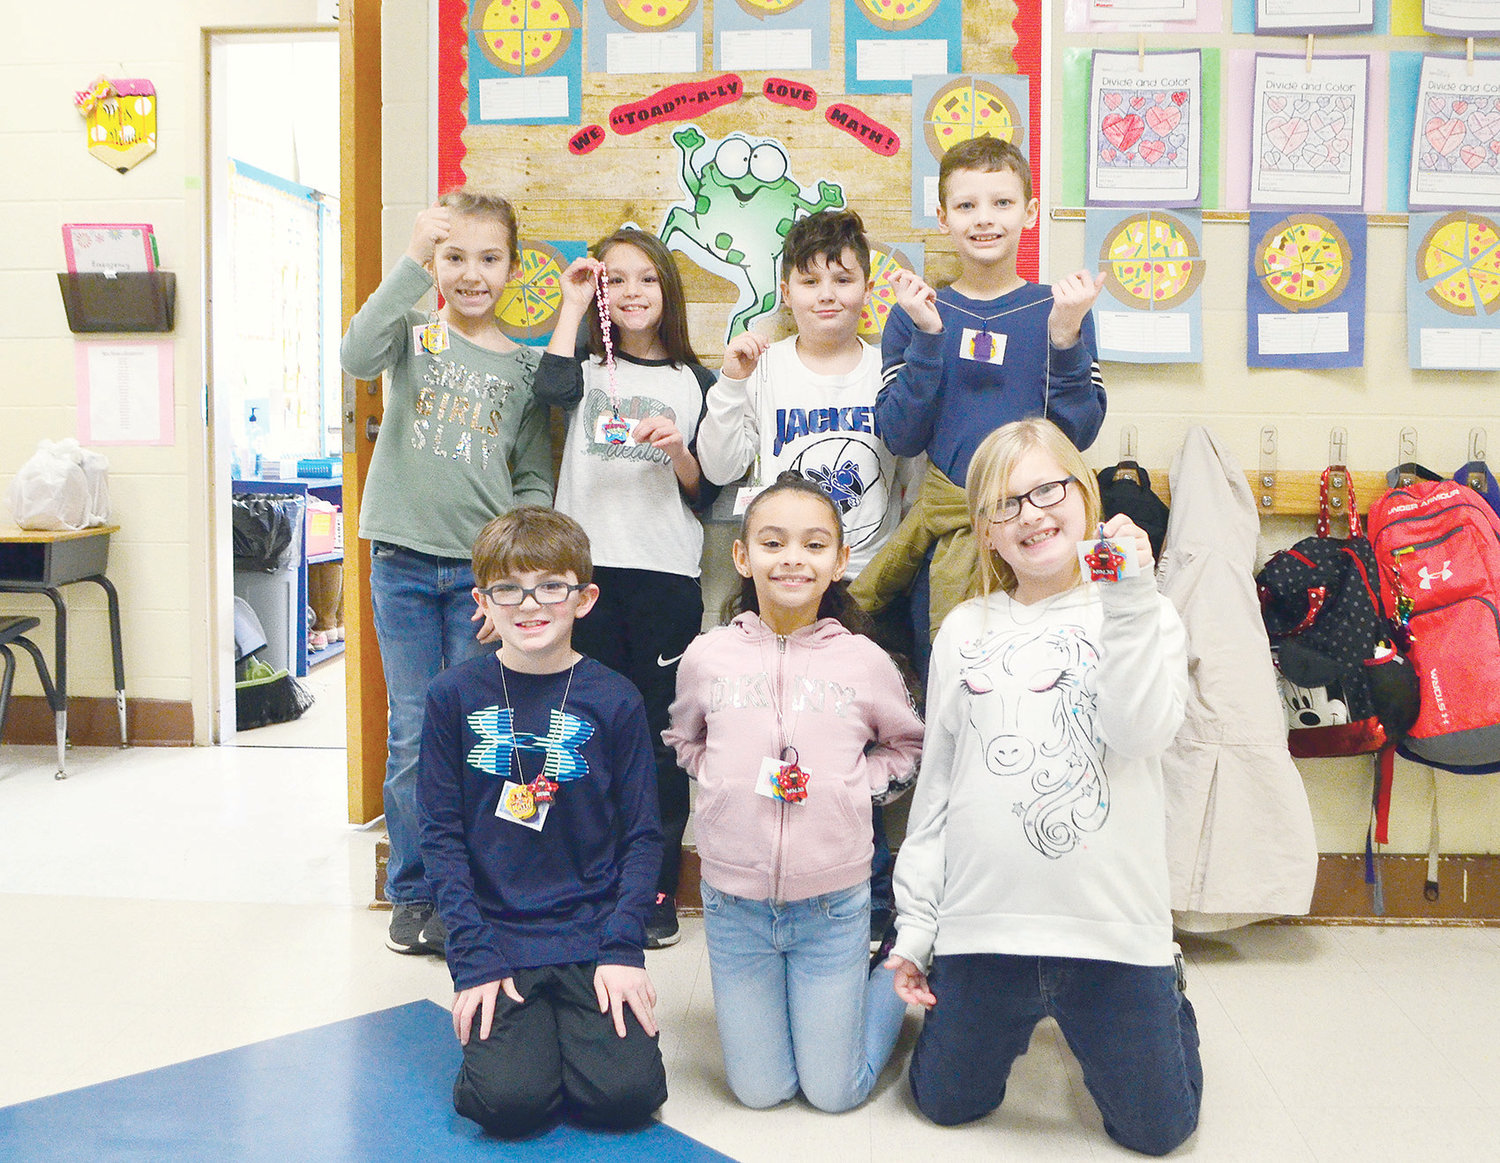 A group of students at Curry Elementary School shows off brag tags they have earned for good behavior, academics and more.